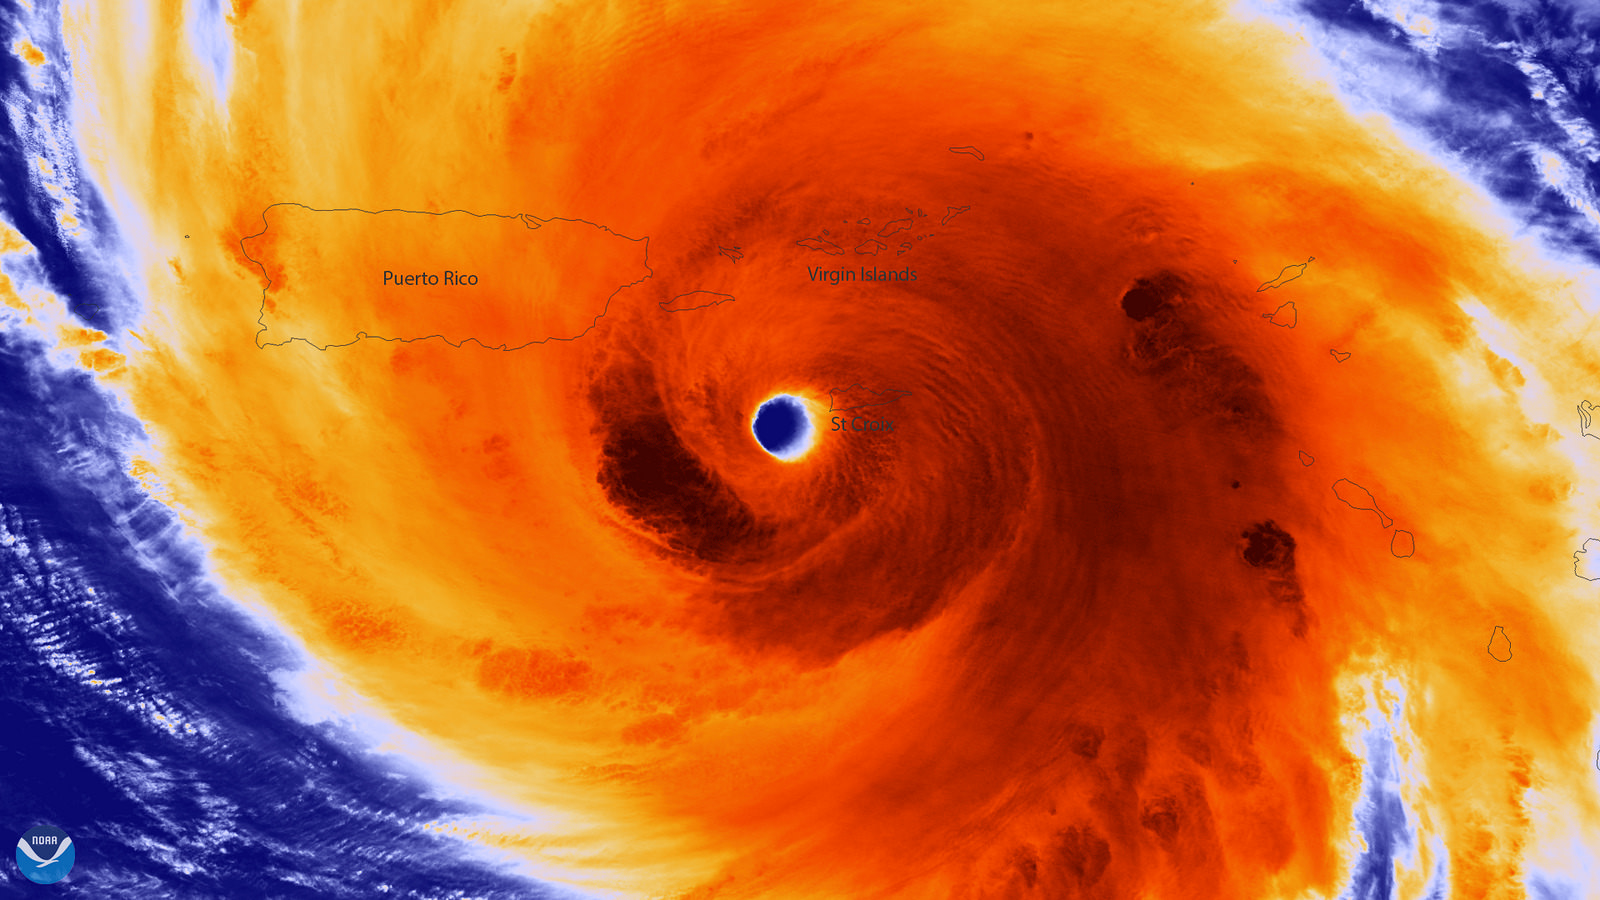 The well-defined eye of Hurricane Maria three hours before arriving in Puerto Rico on September 20, 2017 with maximum sustained winds of around 150 mph. Image credit: NOAA National Satellite, Data and Environmental Information Service (NESDIS) Colored infrared image of the Suomi NPP NOAA / NASA satellite.